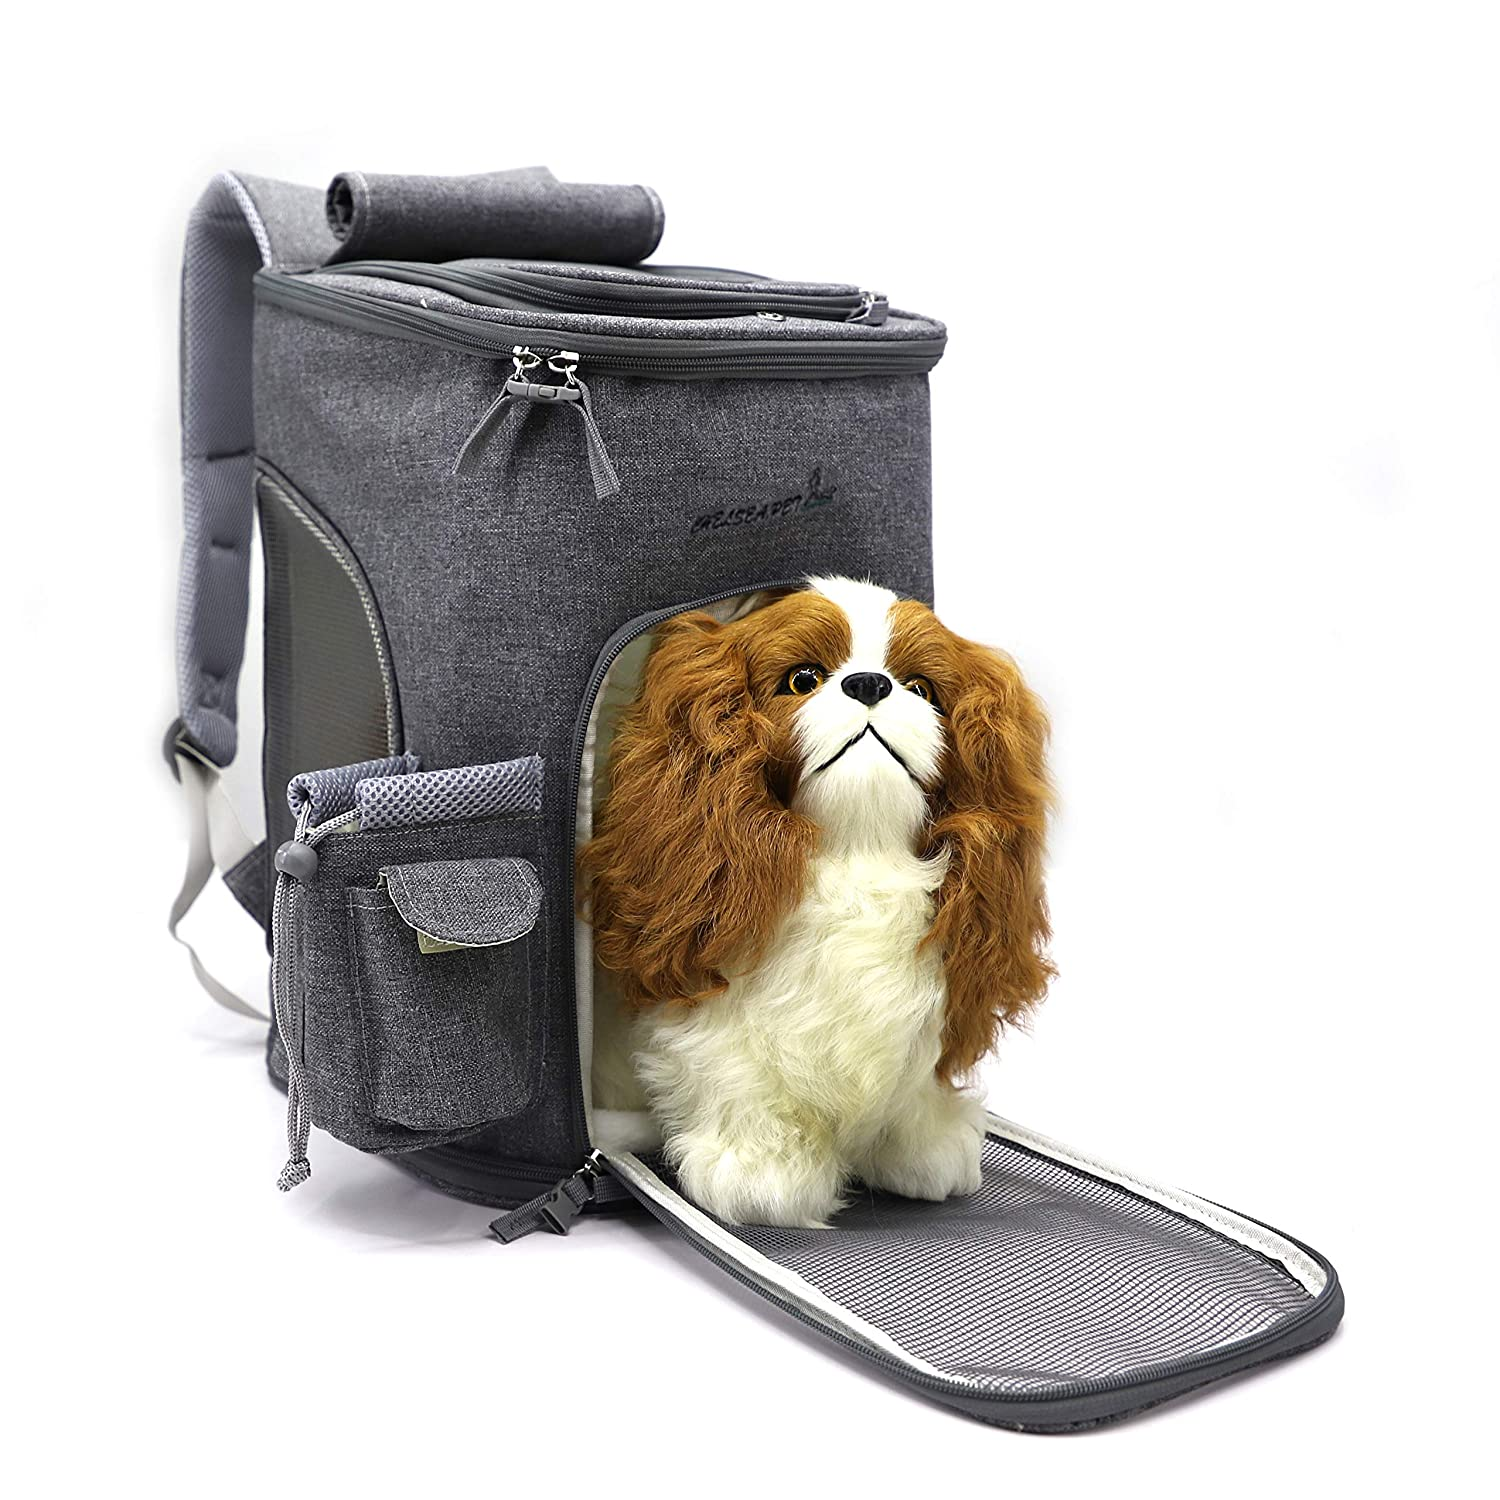 64b53f38d0 Amazon.com : Soft-Sided Pet Carrier Backpack for Small Dogs and Cats  Airline-Approved, Designed for Travel, Hiking, Walking & Outdoor Use(Grey)  : Pet ...